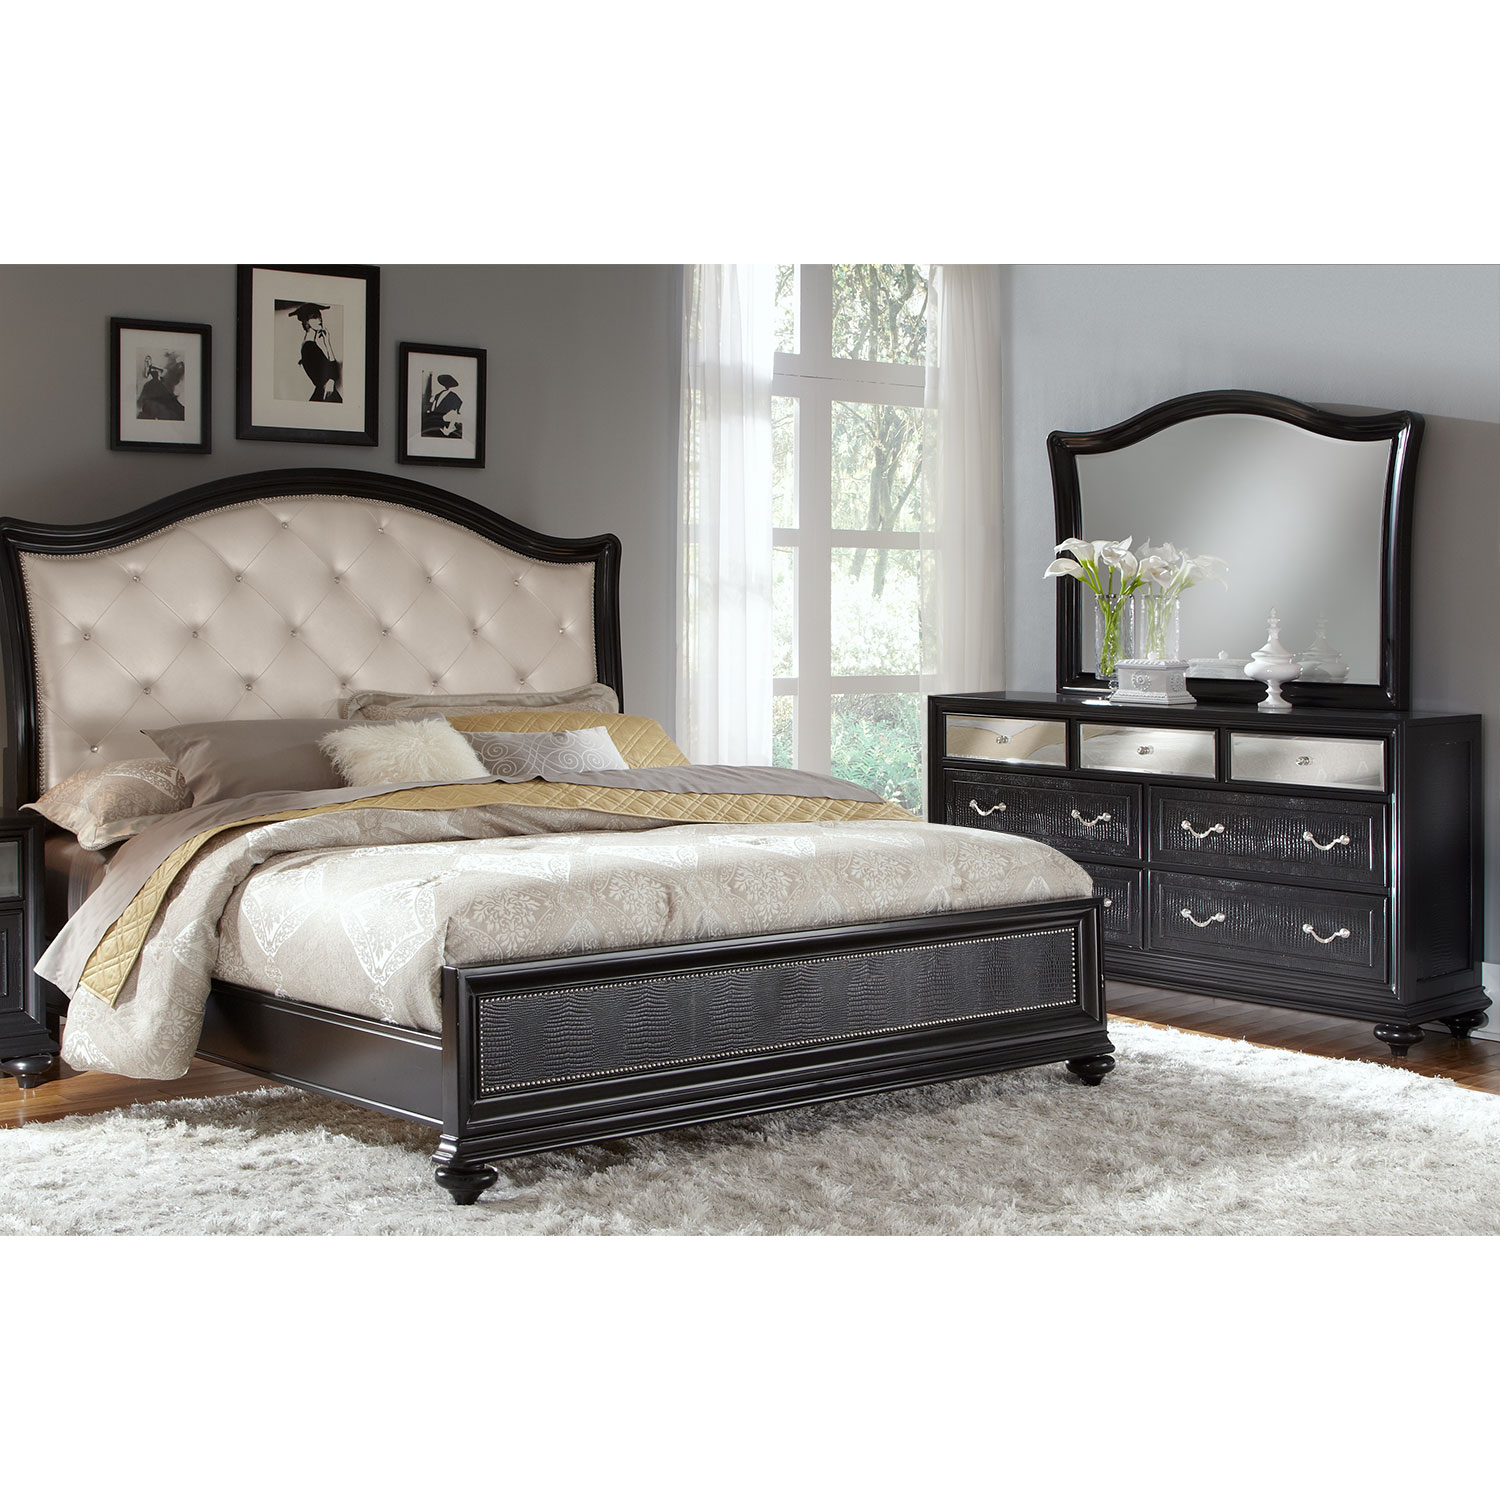 Hover to zoom. Marilyn 5 Piece Queen Bedroom Set   Ebony   Value City Furniture